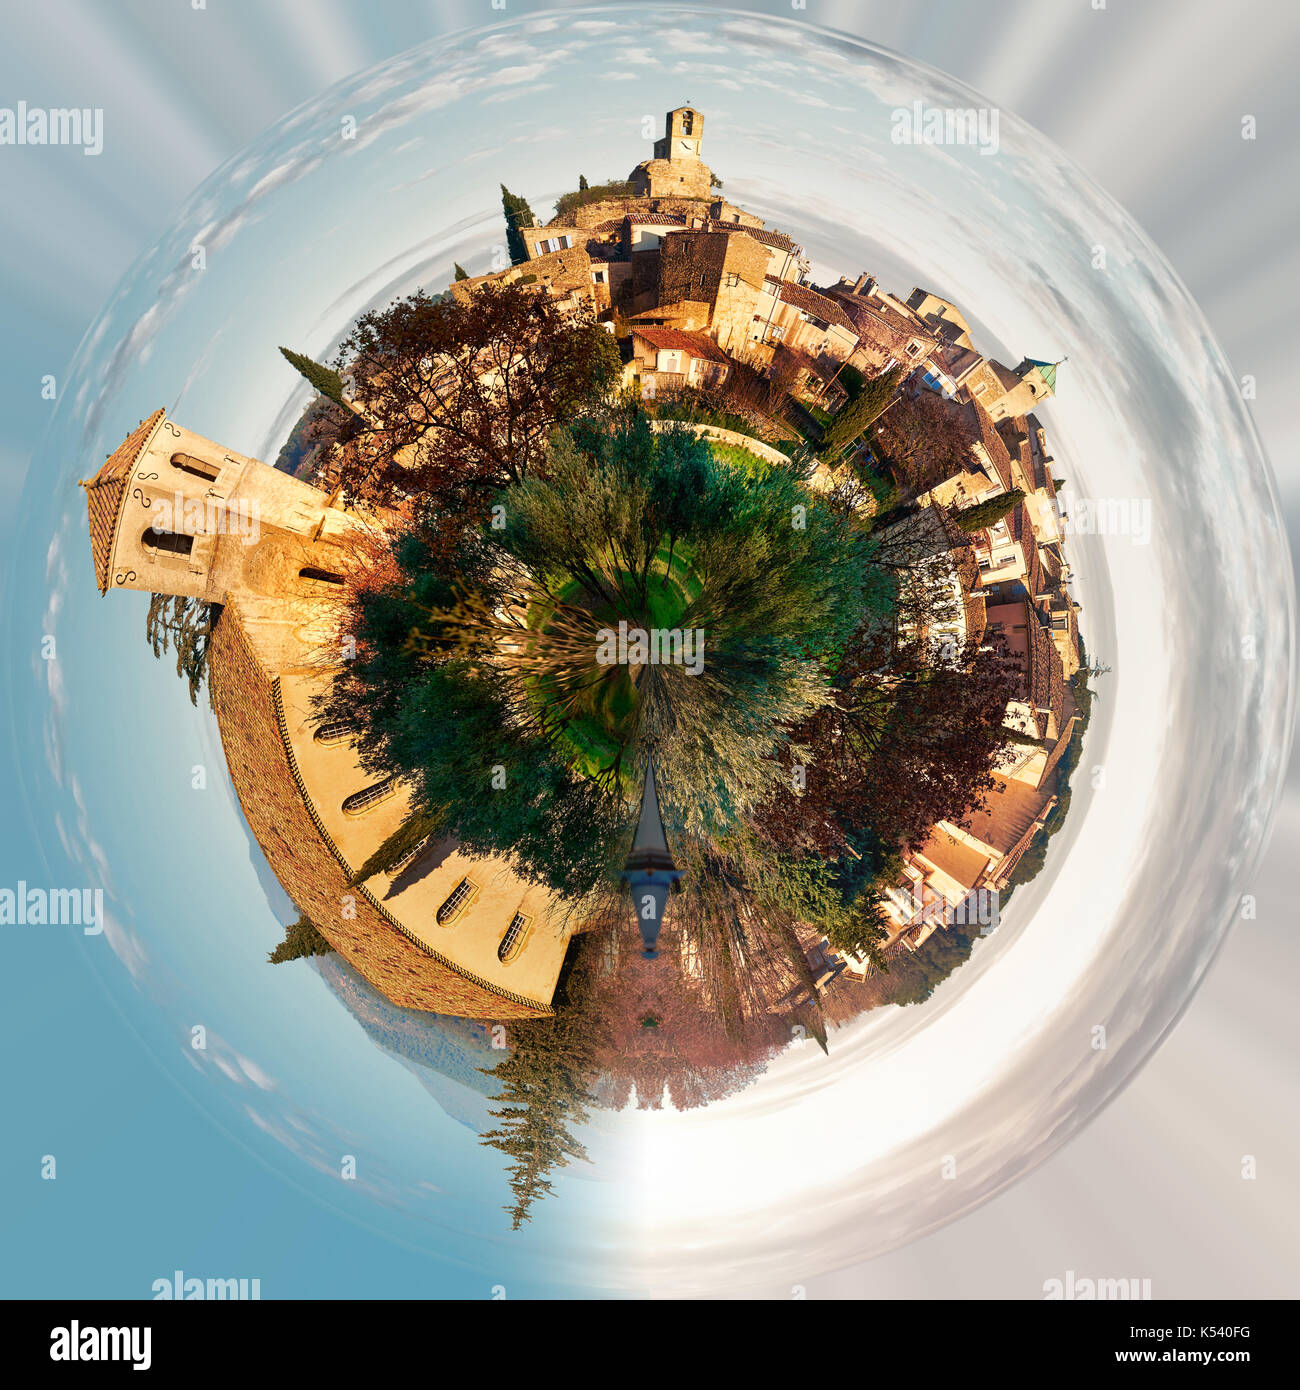 Little planet 360 degree sphere. Panorama of Lourmarin. Listed as the most beautiful villages of France. Provence-Alpes-Cote d'Azur. - Stock Image